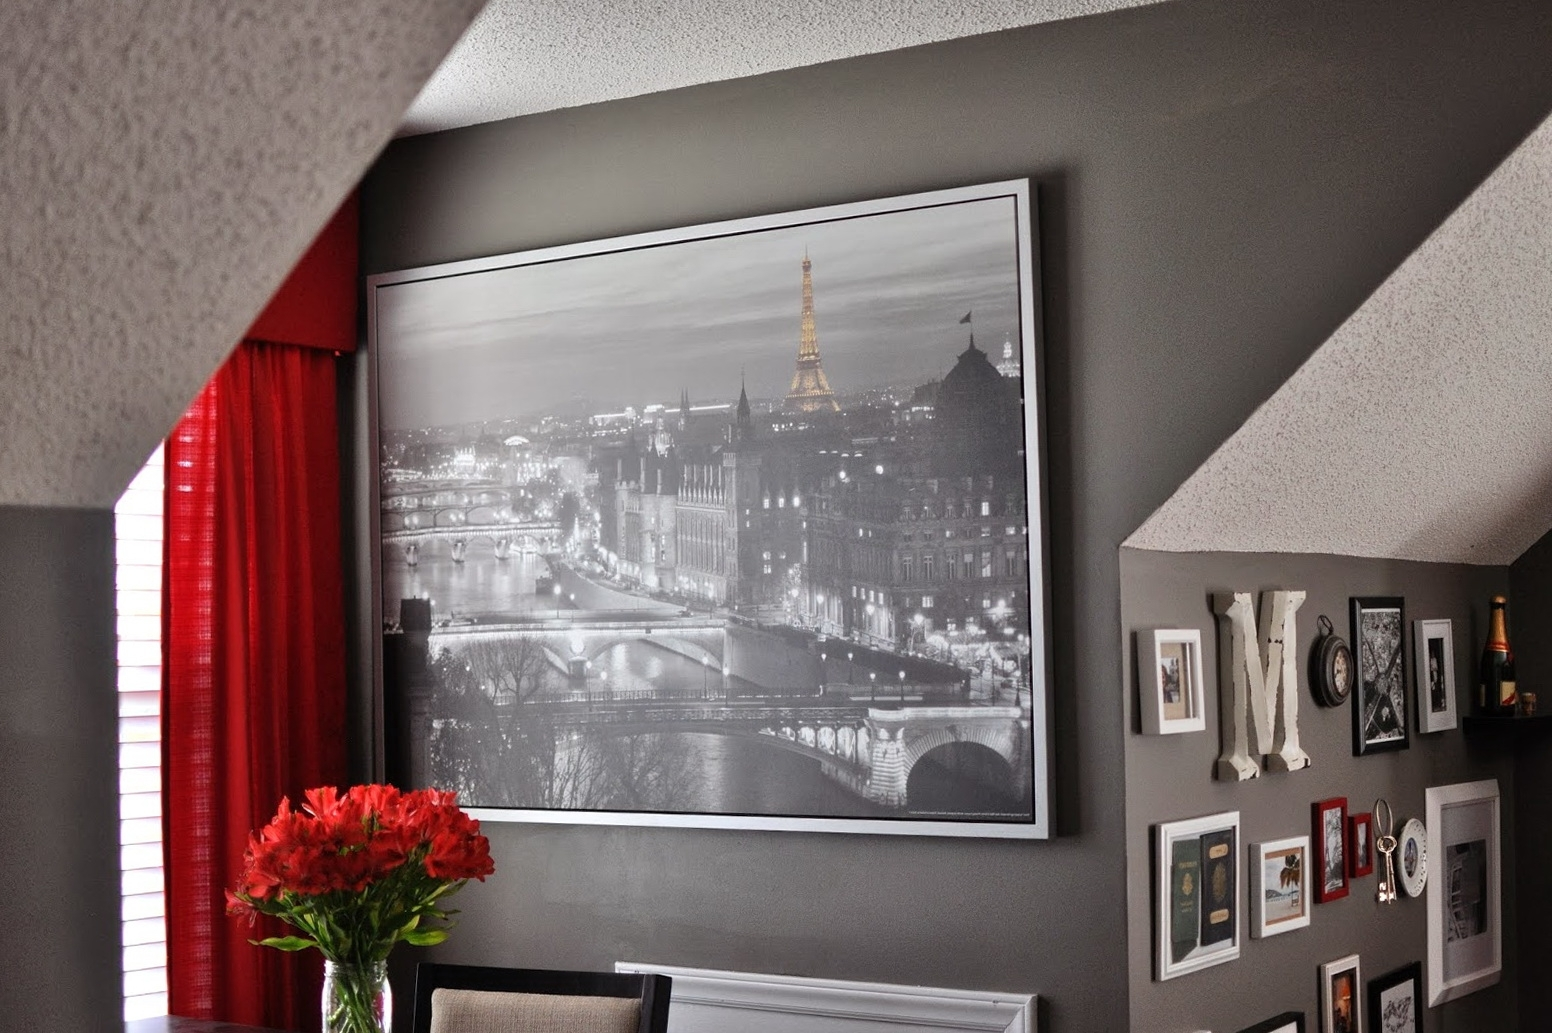 40 Super Design Ideas Ikea Wall Art Canvas | Panfan Site Throughout Most Popular Canvas Wall Art At Ikea (View 2 of 15)